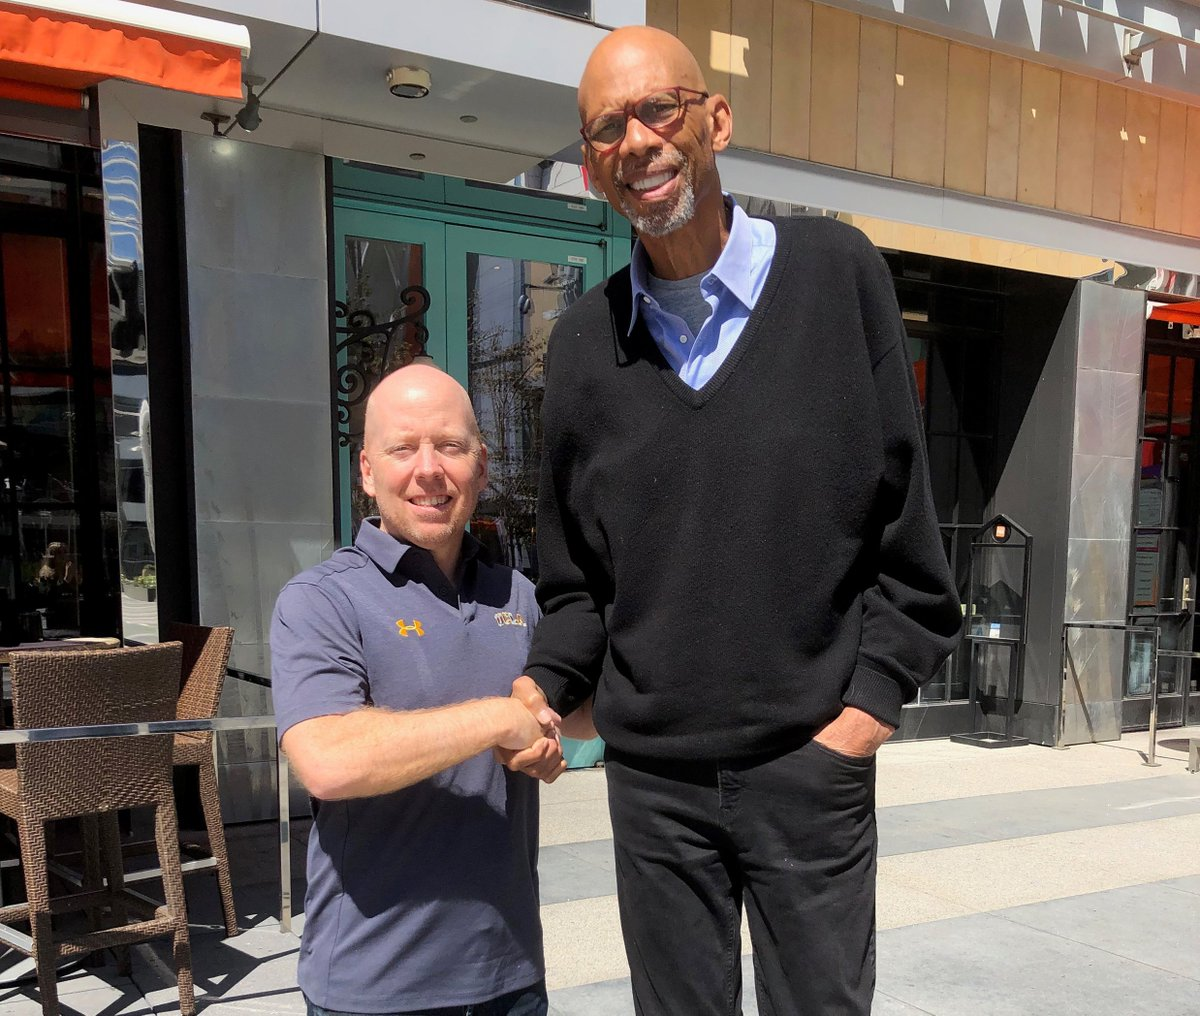 Perks of the job! Accepting the kindest invitation to lunch yesterday from one of my idols (@kaj33). He loves UCLA with all his heart. #BruinFamily